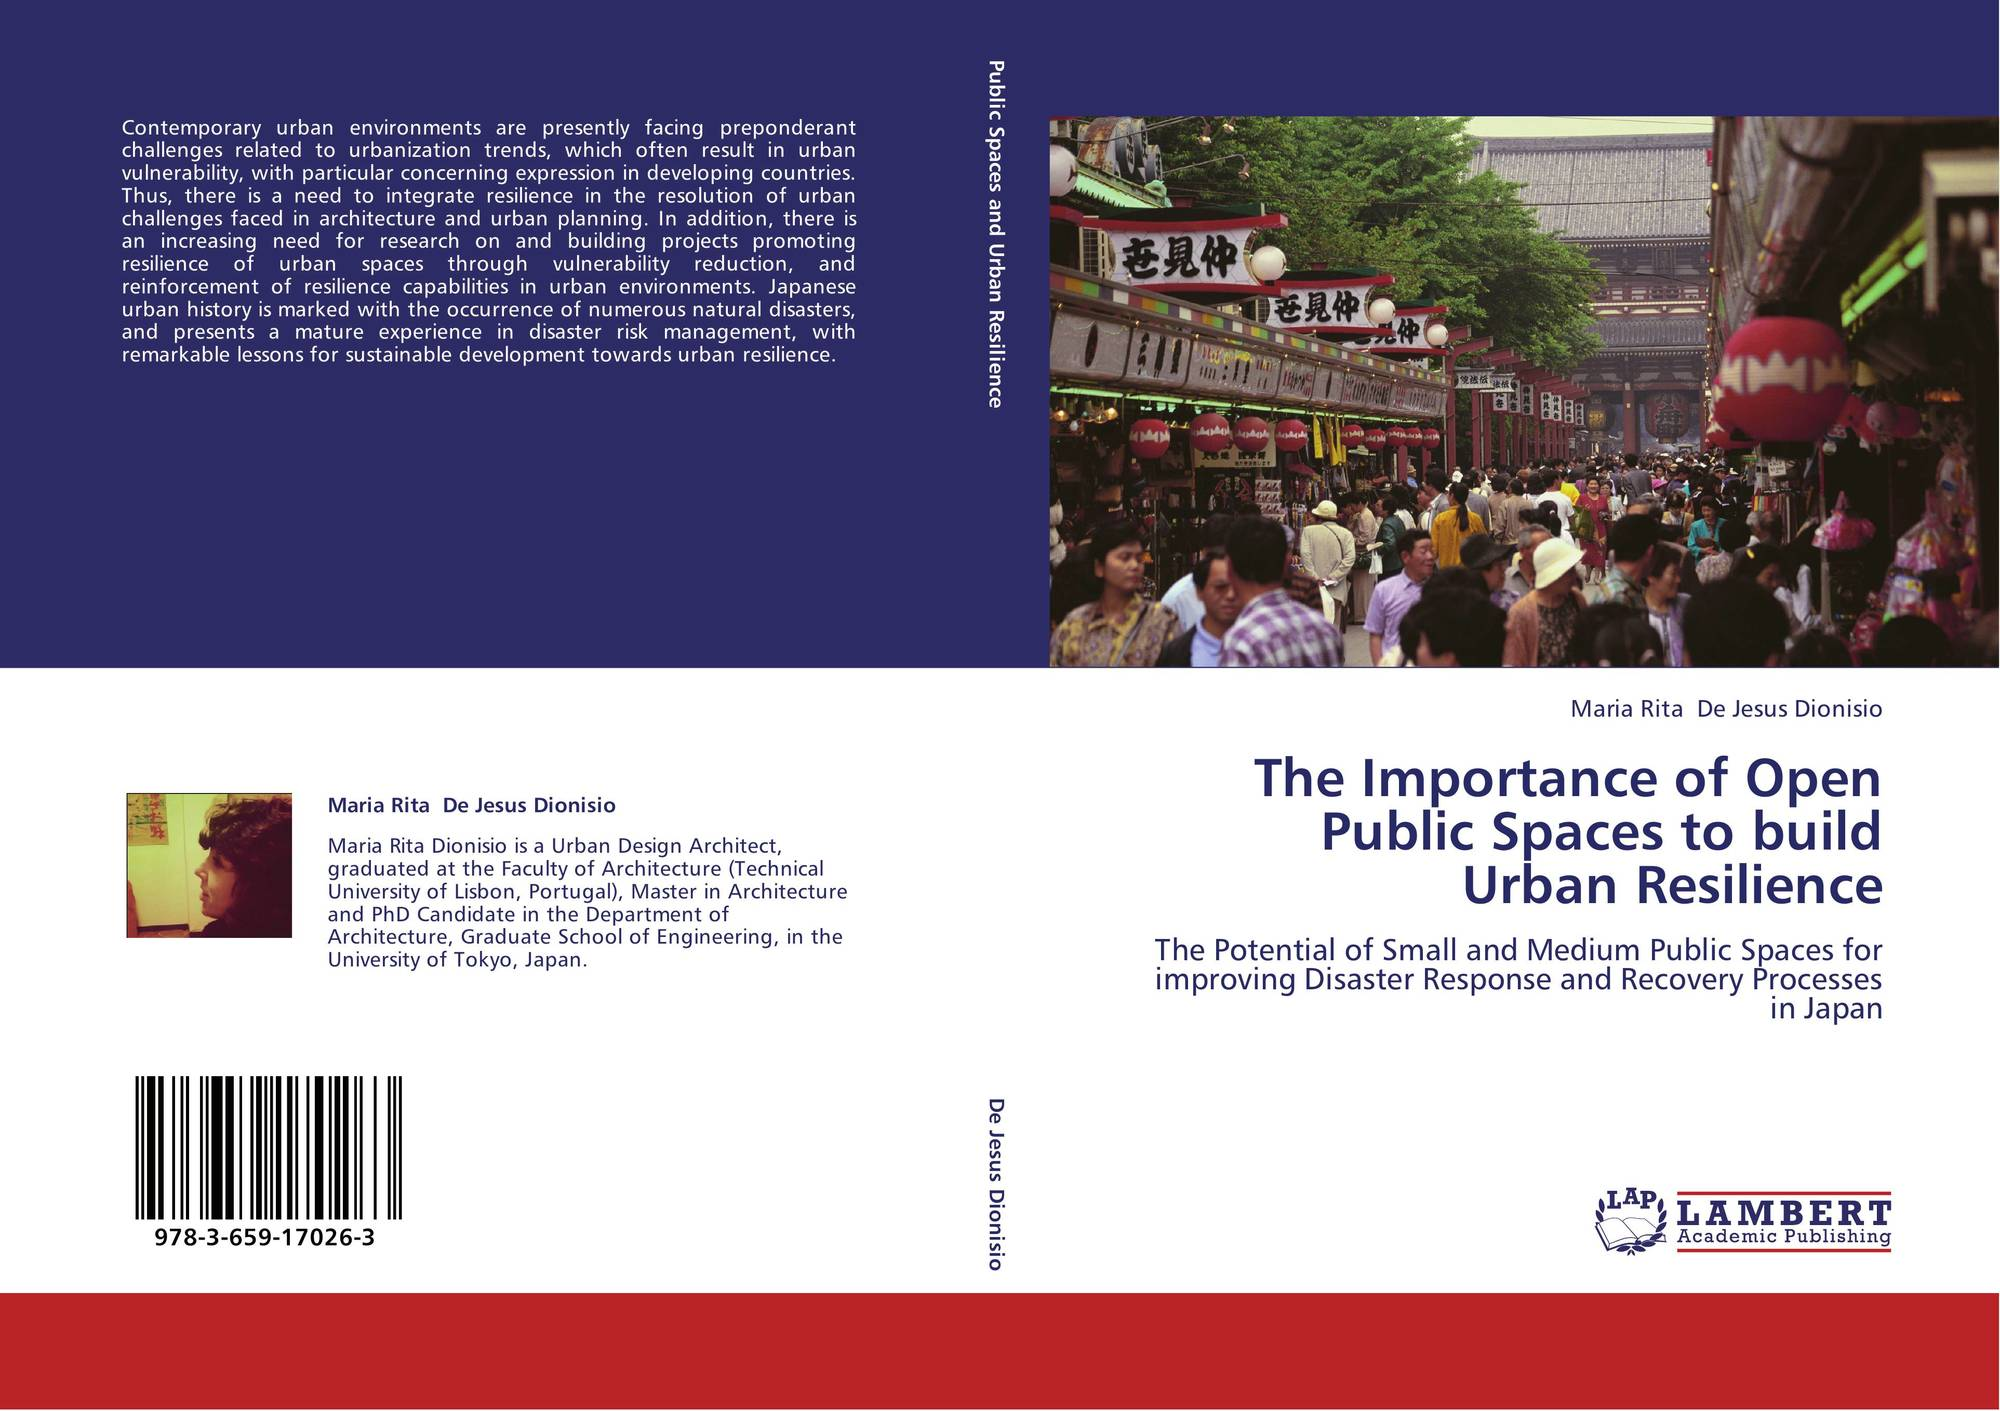 importance of public spaces A public space means an open space like the parks, recreational areas, streets, plazas and other publicly owned outdoor spaces in sociology, public space can be defined as an accessible place to anyone and reflects a notion of basic social freedom and equality in circulation and anonymity by the individual (grazian, 2004.